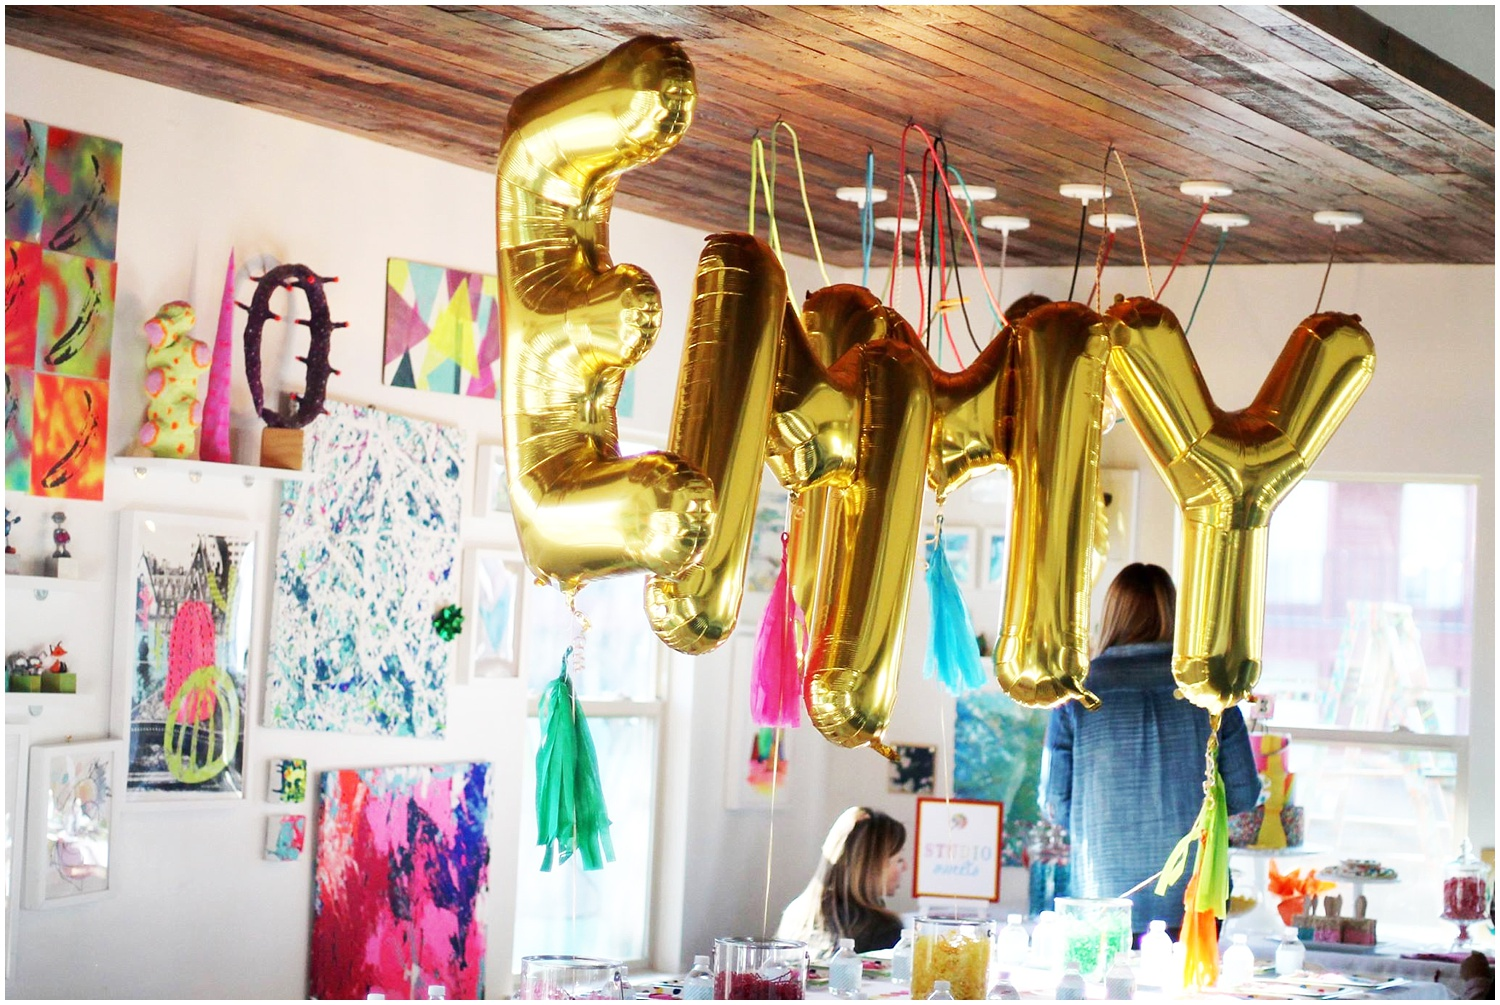 Art_themedchildrensparty_AustinTX_0113.jpg